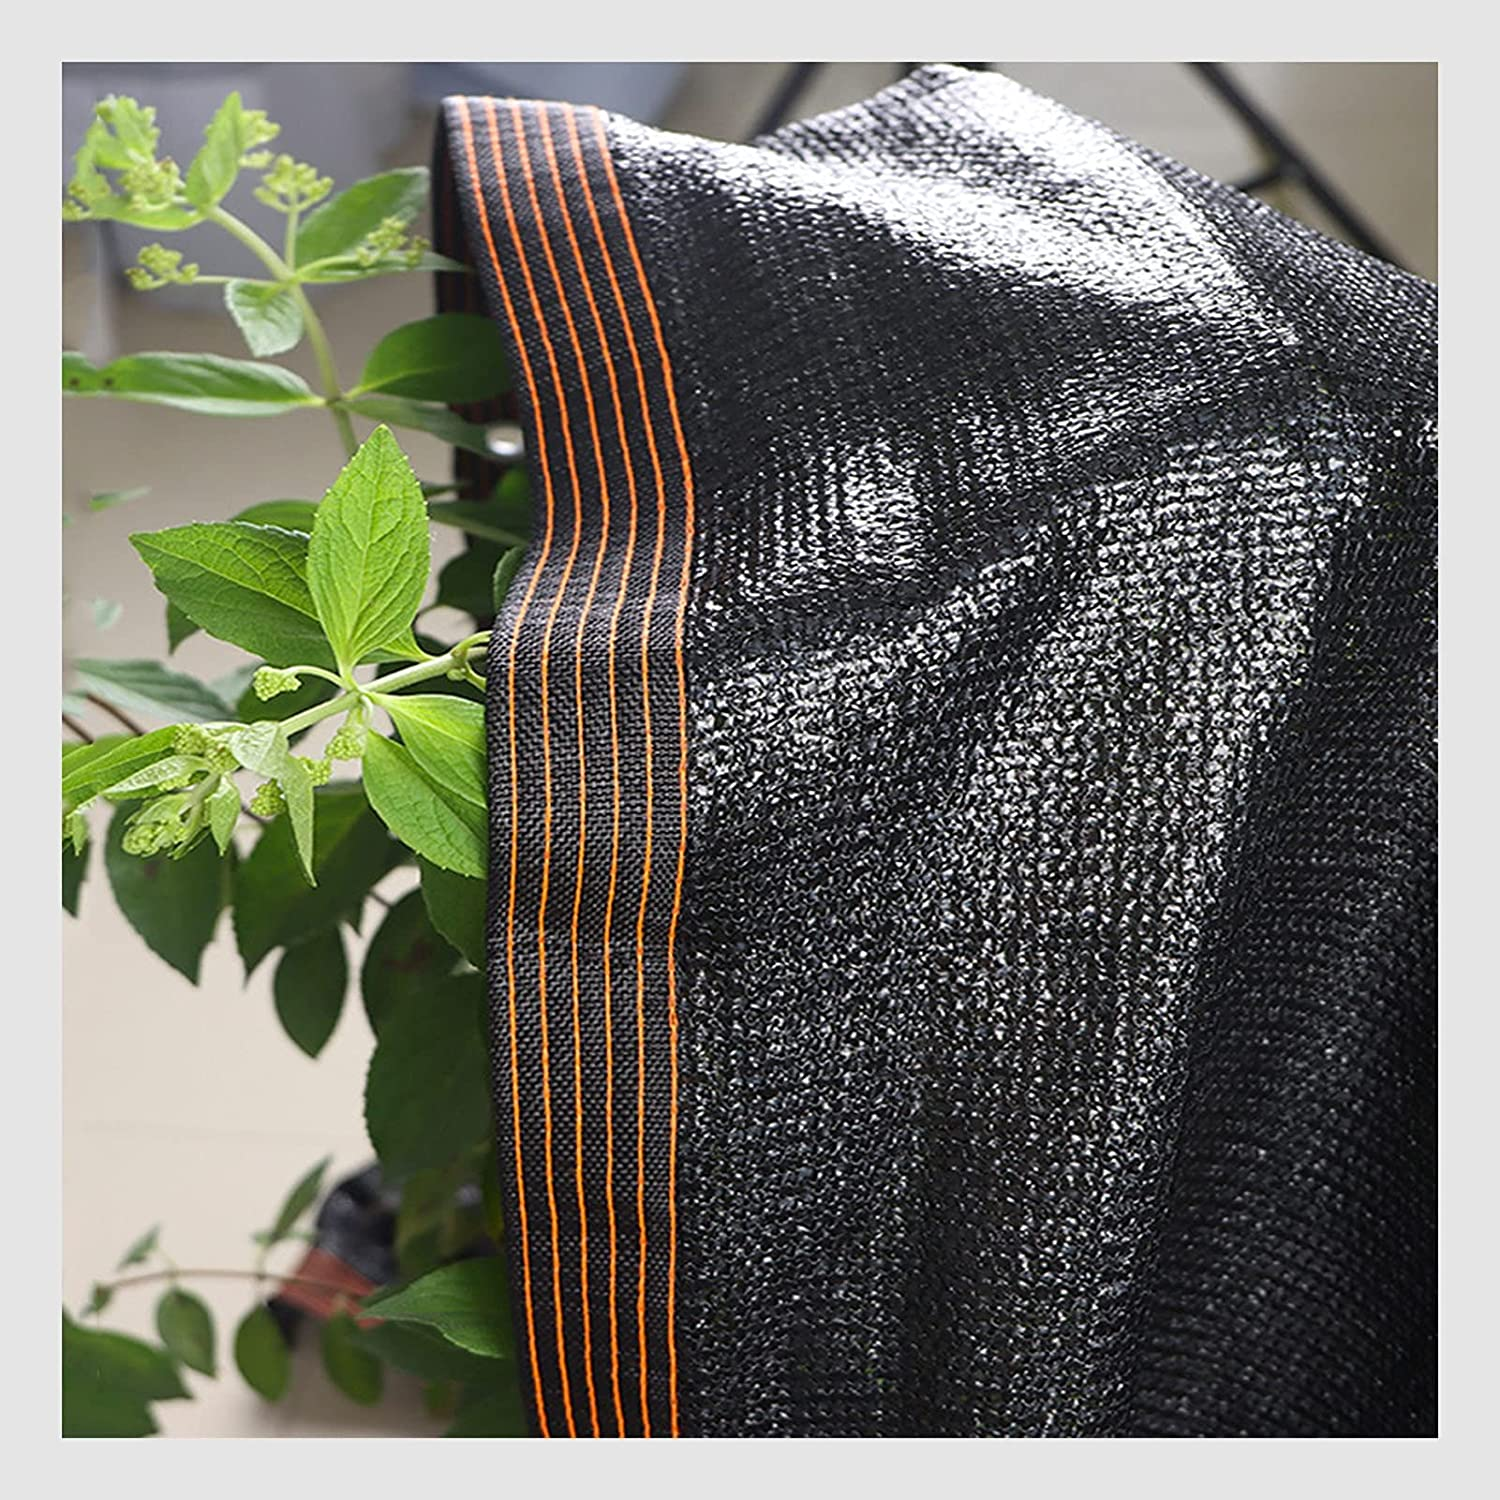 New products world's highest quality popular LIXIONG Sunblock Recommended Shade Cloth Reduce Stretch Heat Anti-Wrinkle R